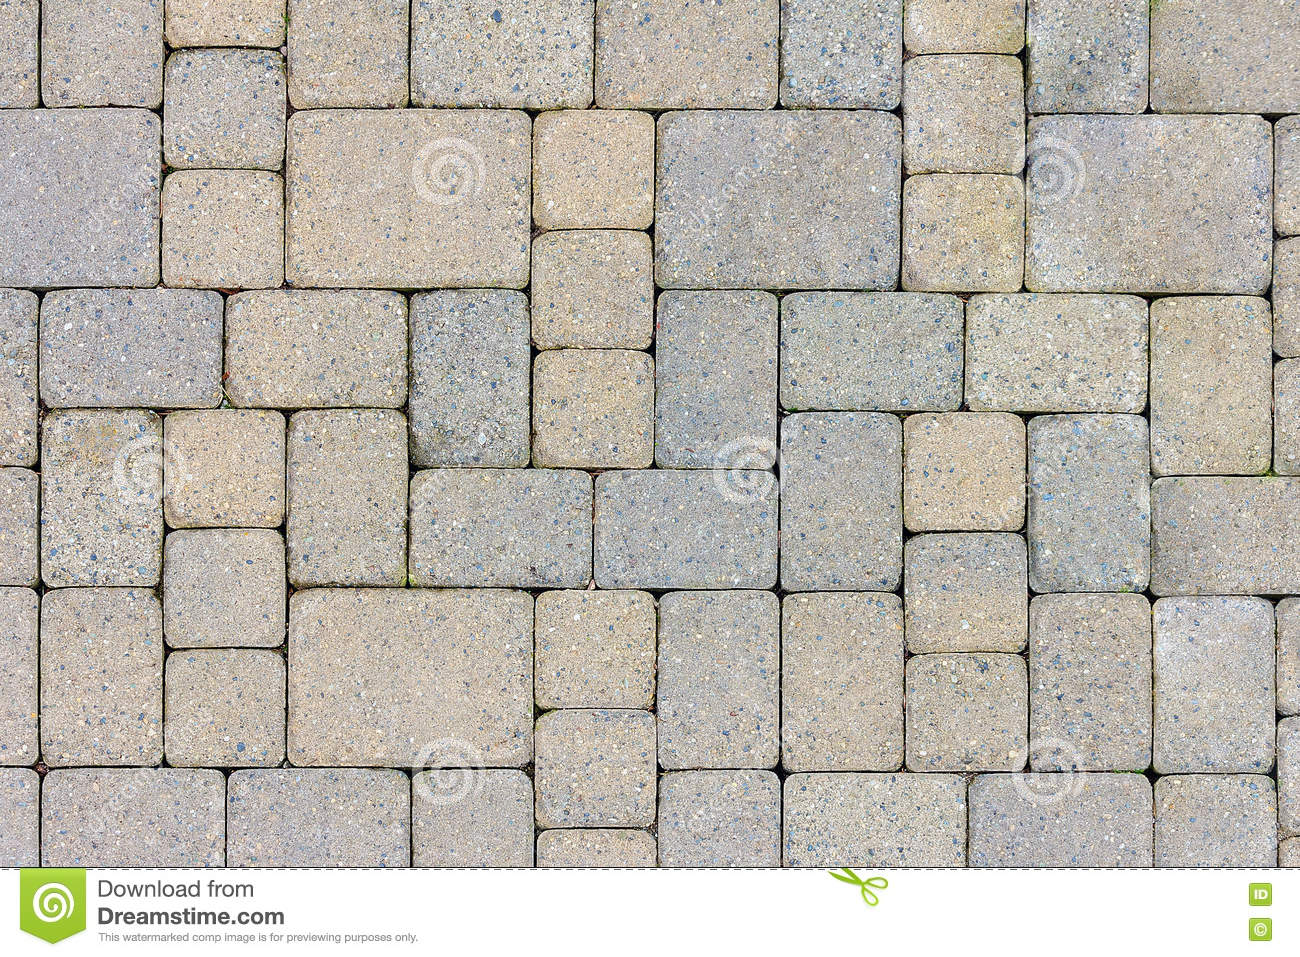 Garden patio stone pavers top view stock image image for Bricks stone design